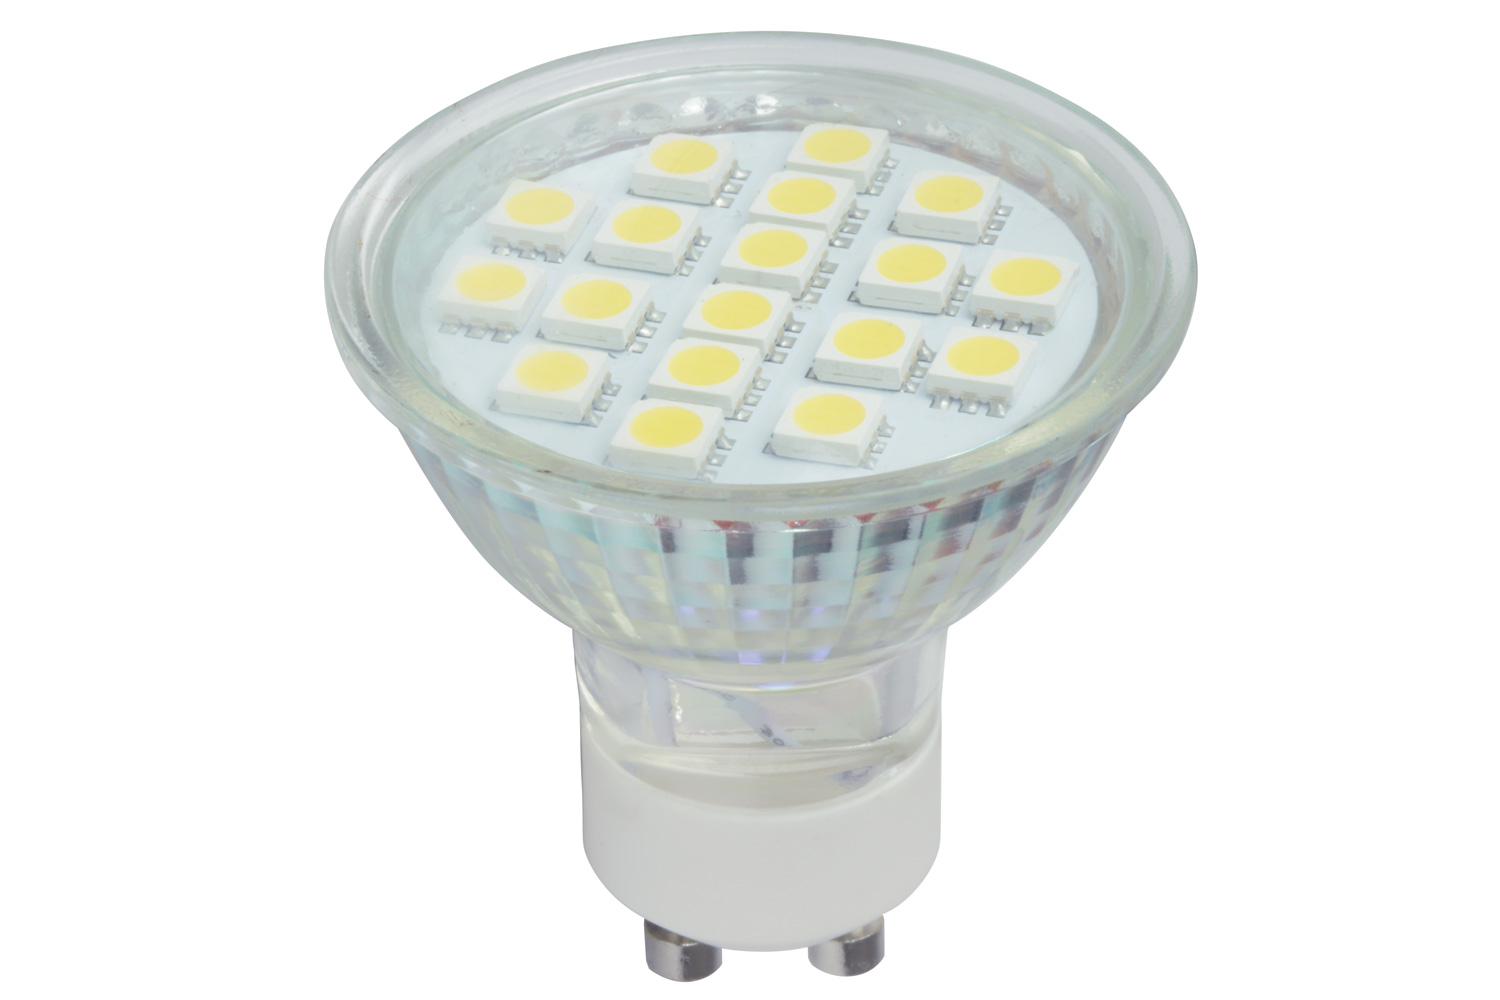 lyyt GU10 18 LED lamp - cool white 6000K)